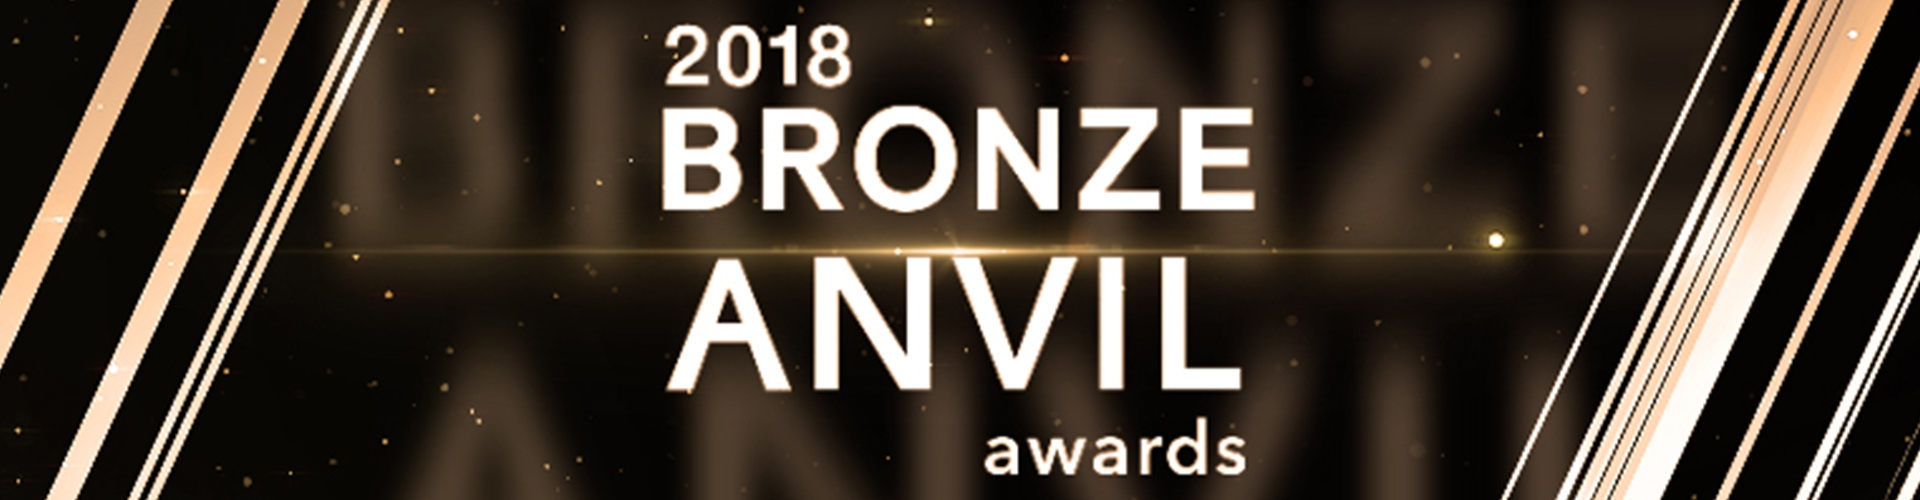 Bronze Anvil_2018 Header Banner